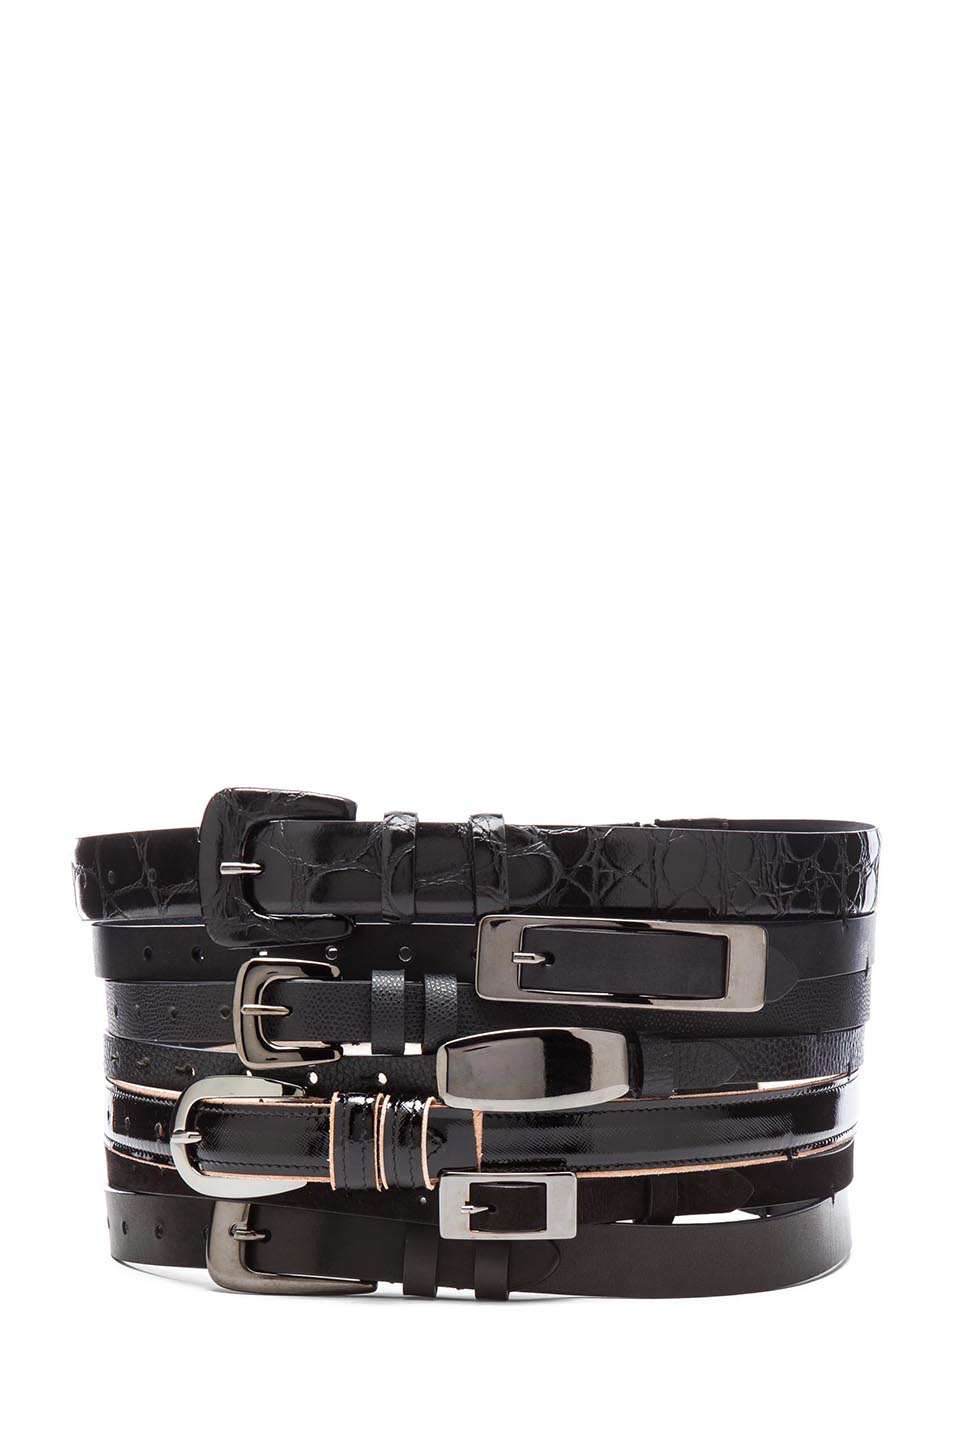 Maison Martin Margiela|Multi Leather Belt in Black